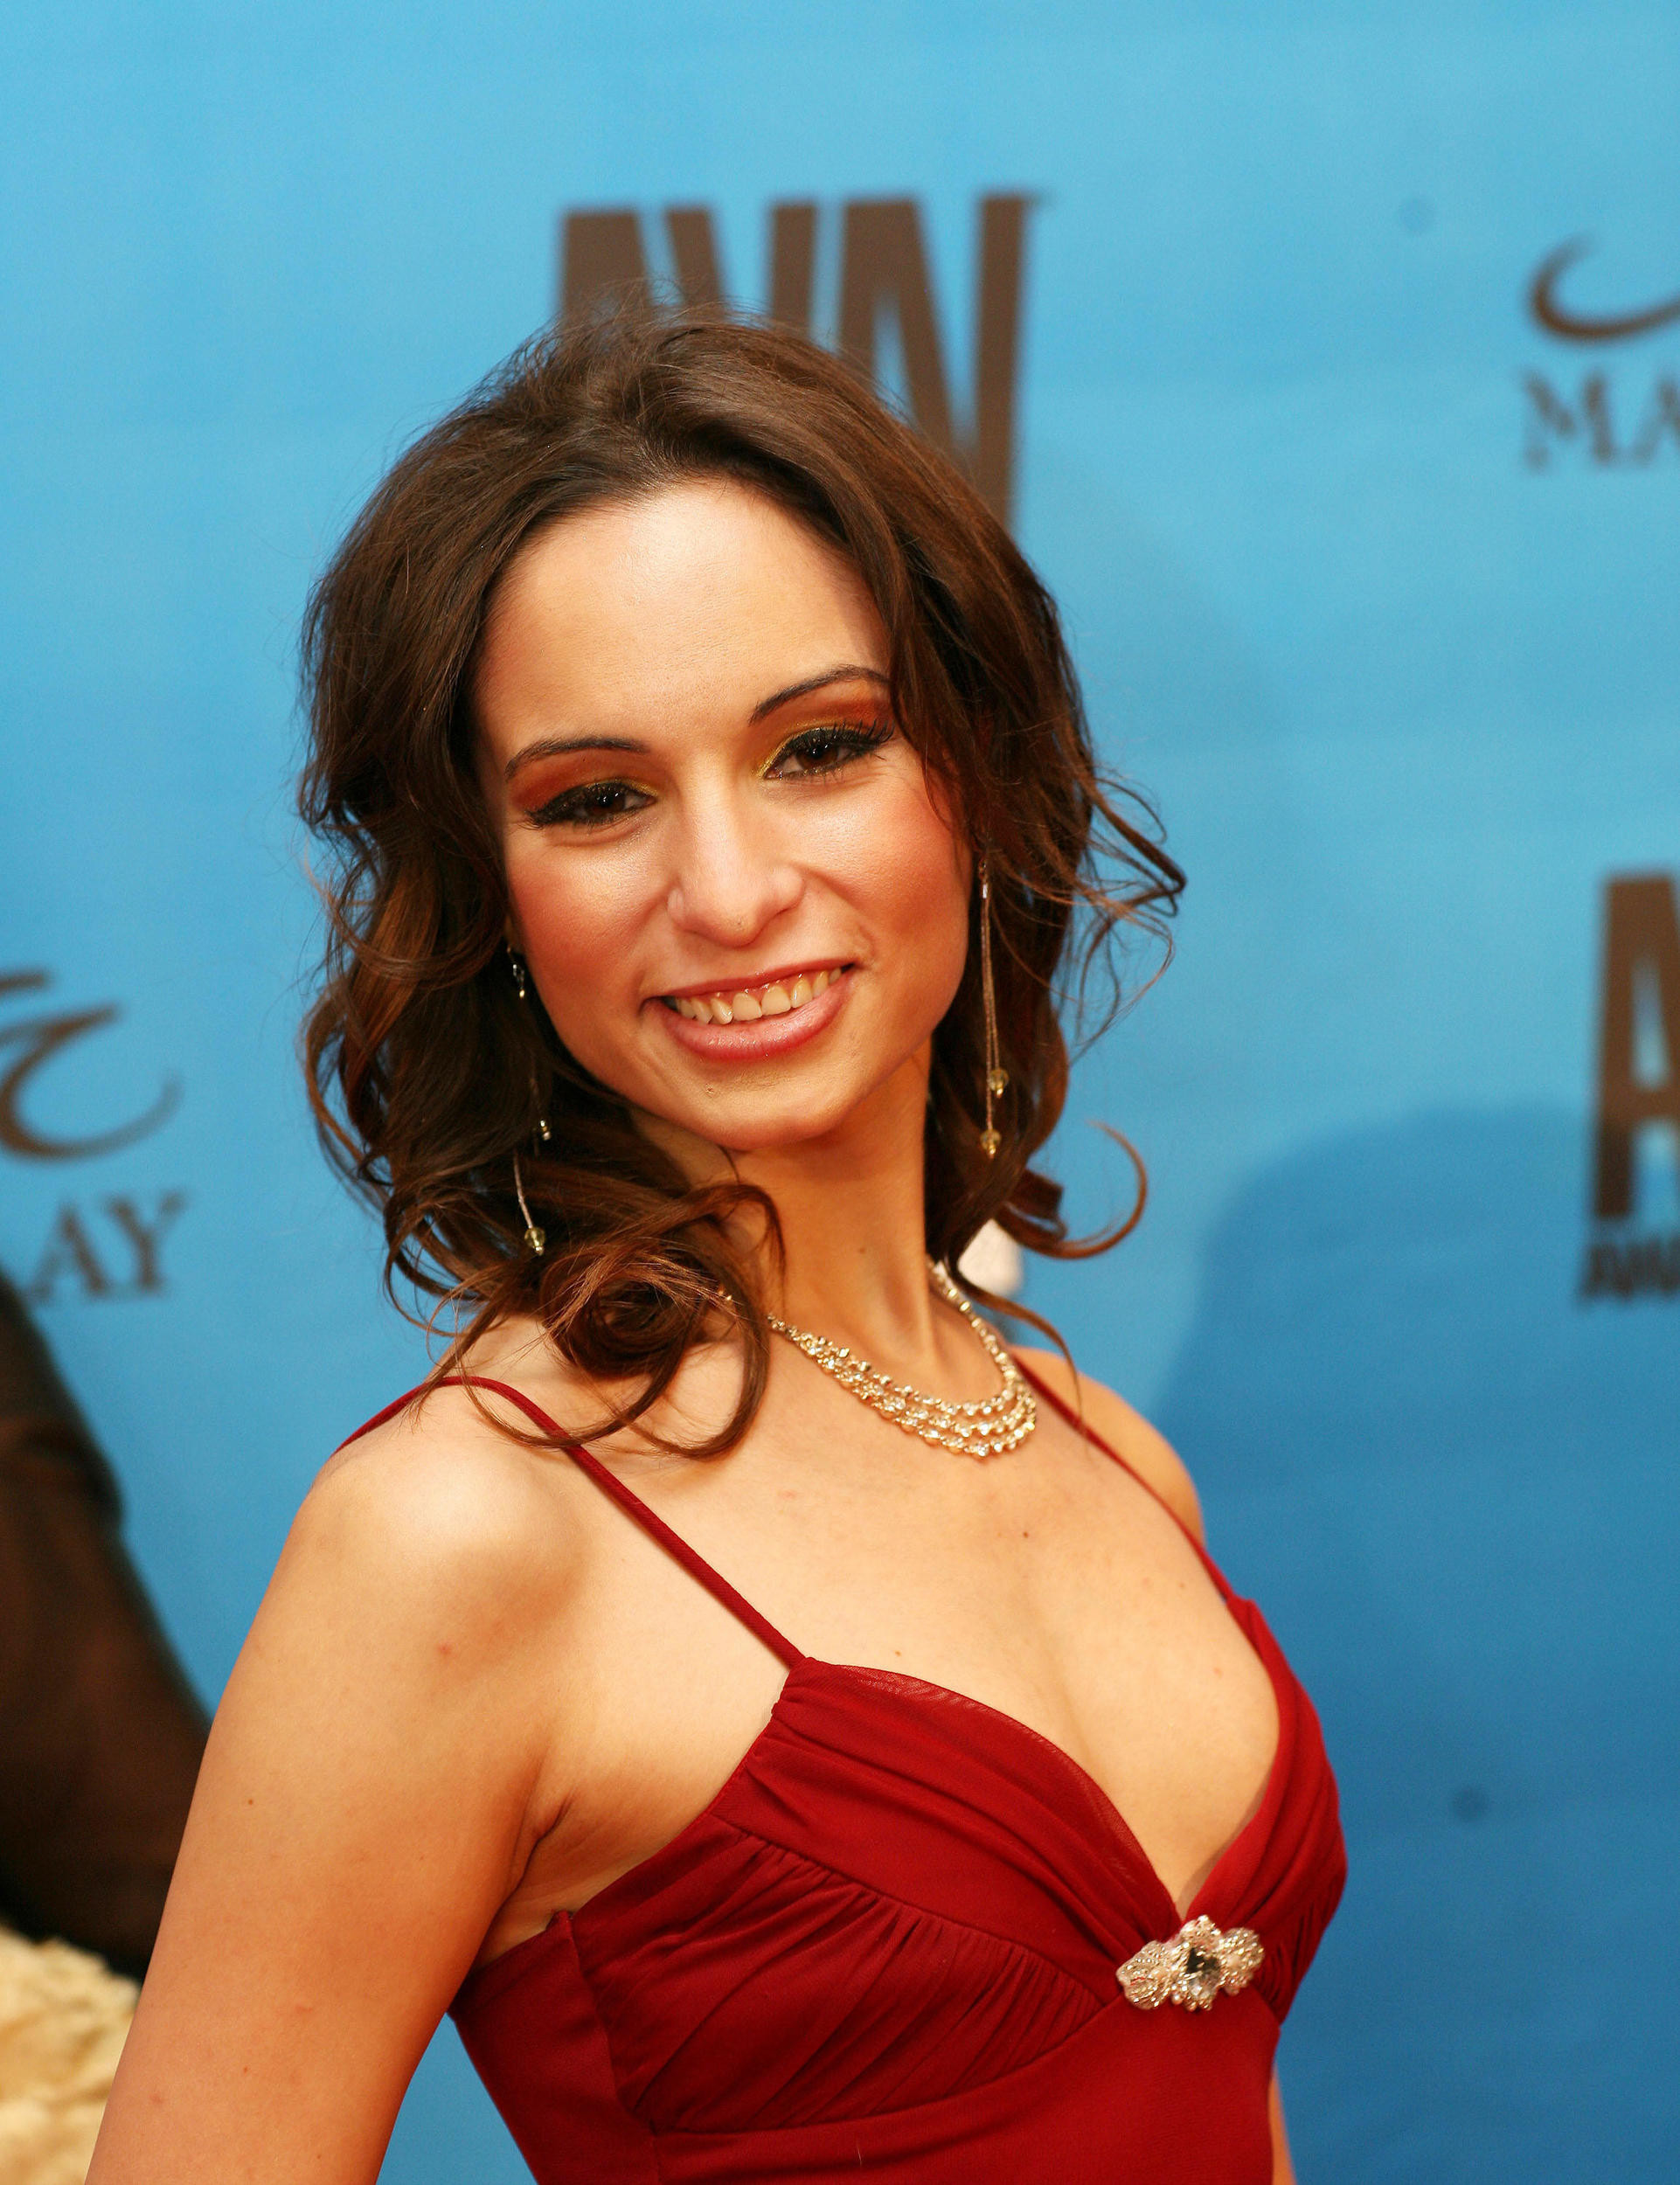 Amber Porn Pics porn star amber rayne died of cocaine overdose, coroner says